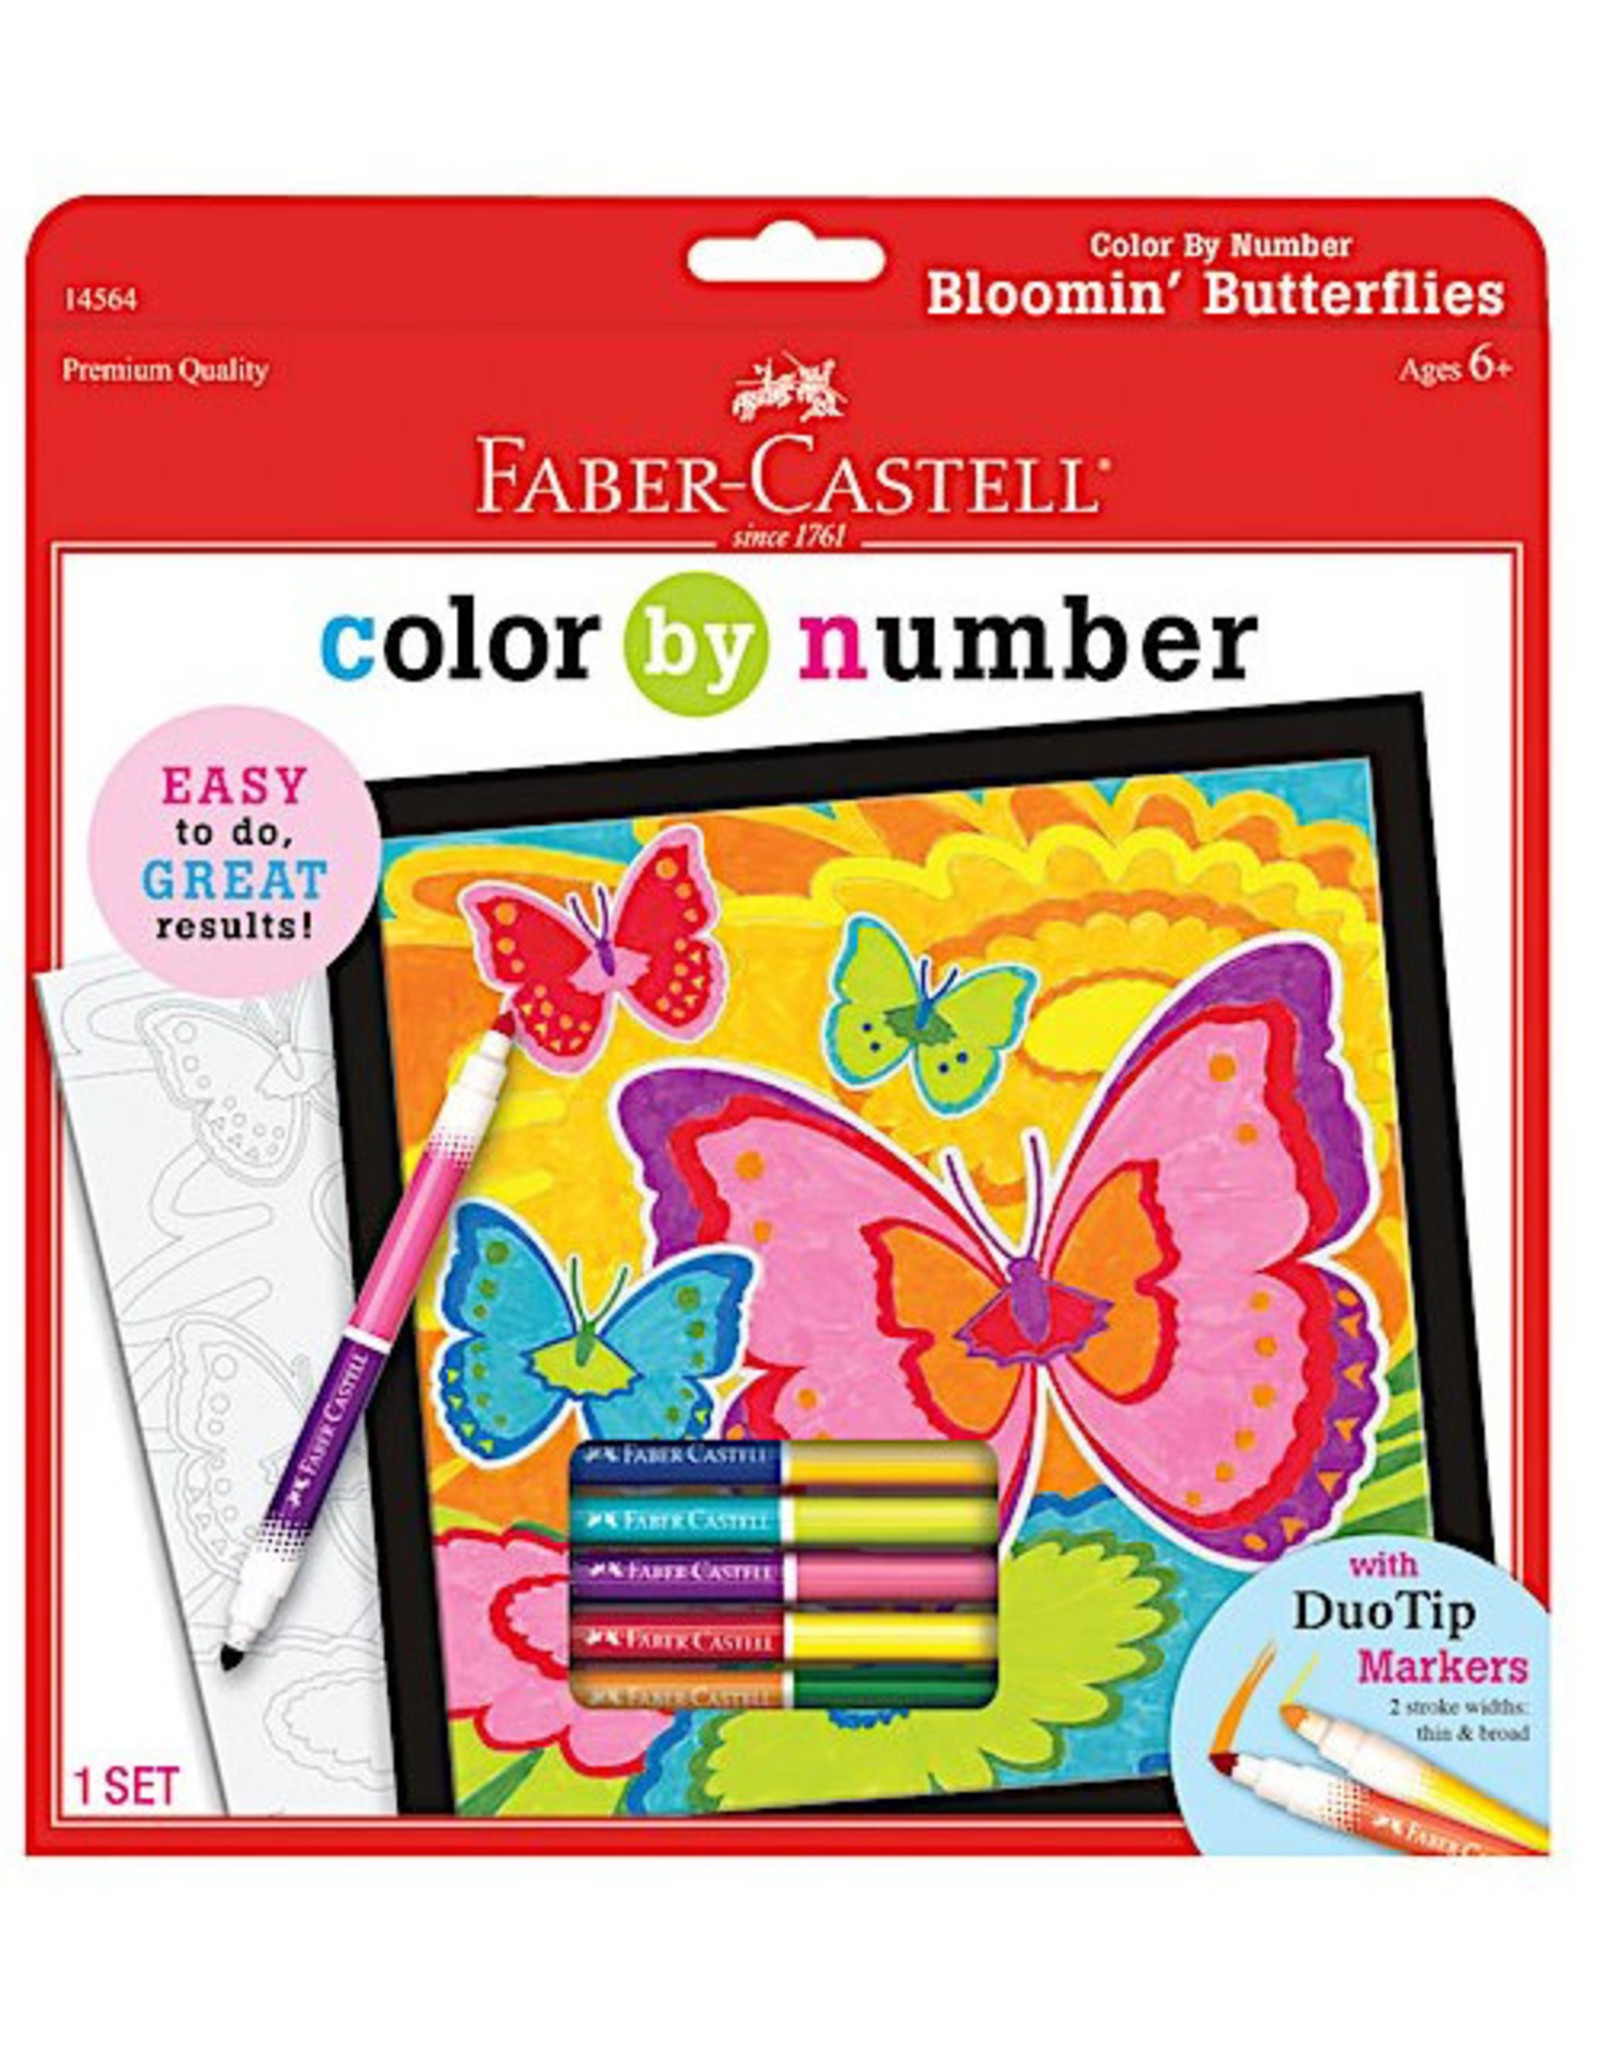 Faber Castell Color By Number Bloomin' Butterflies